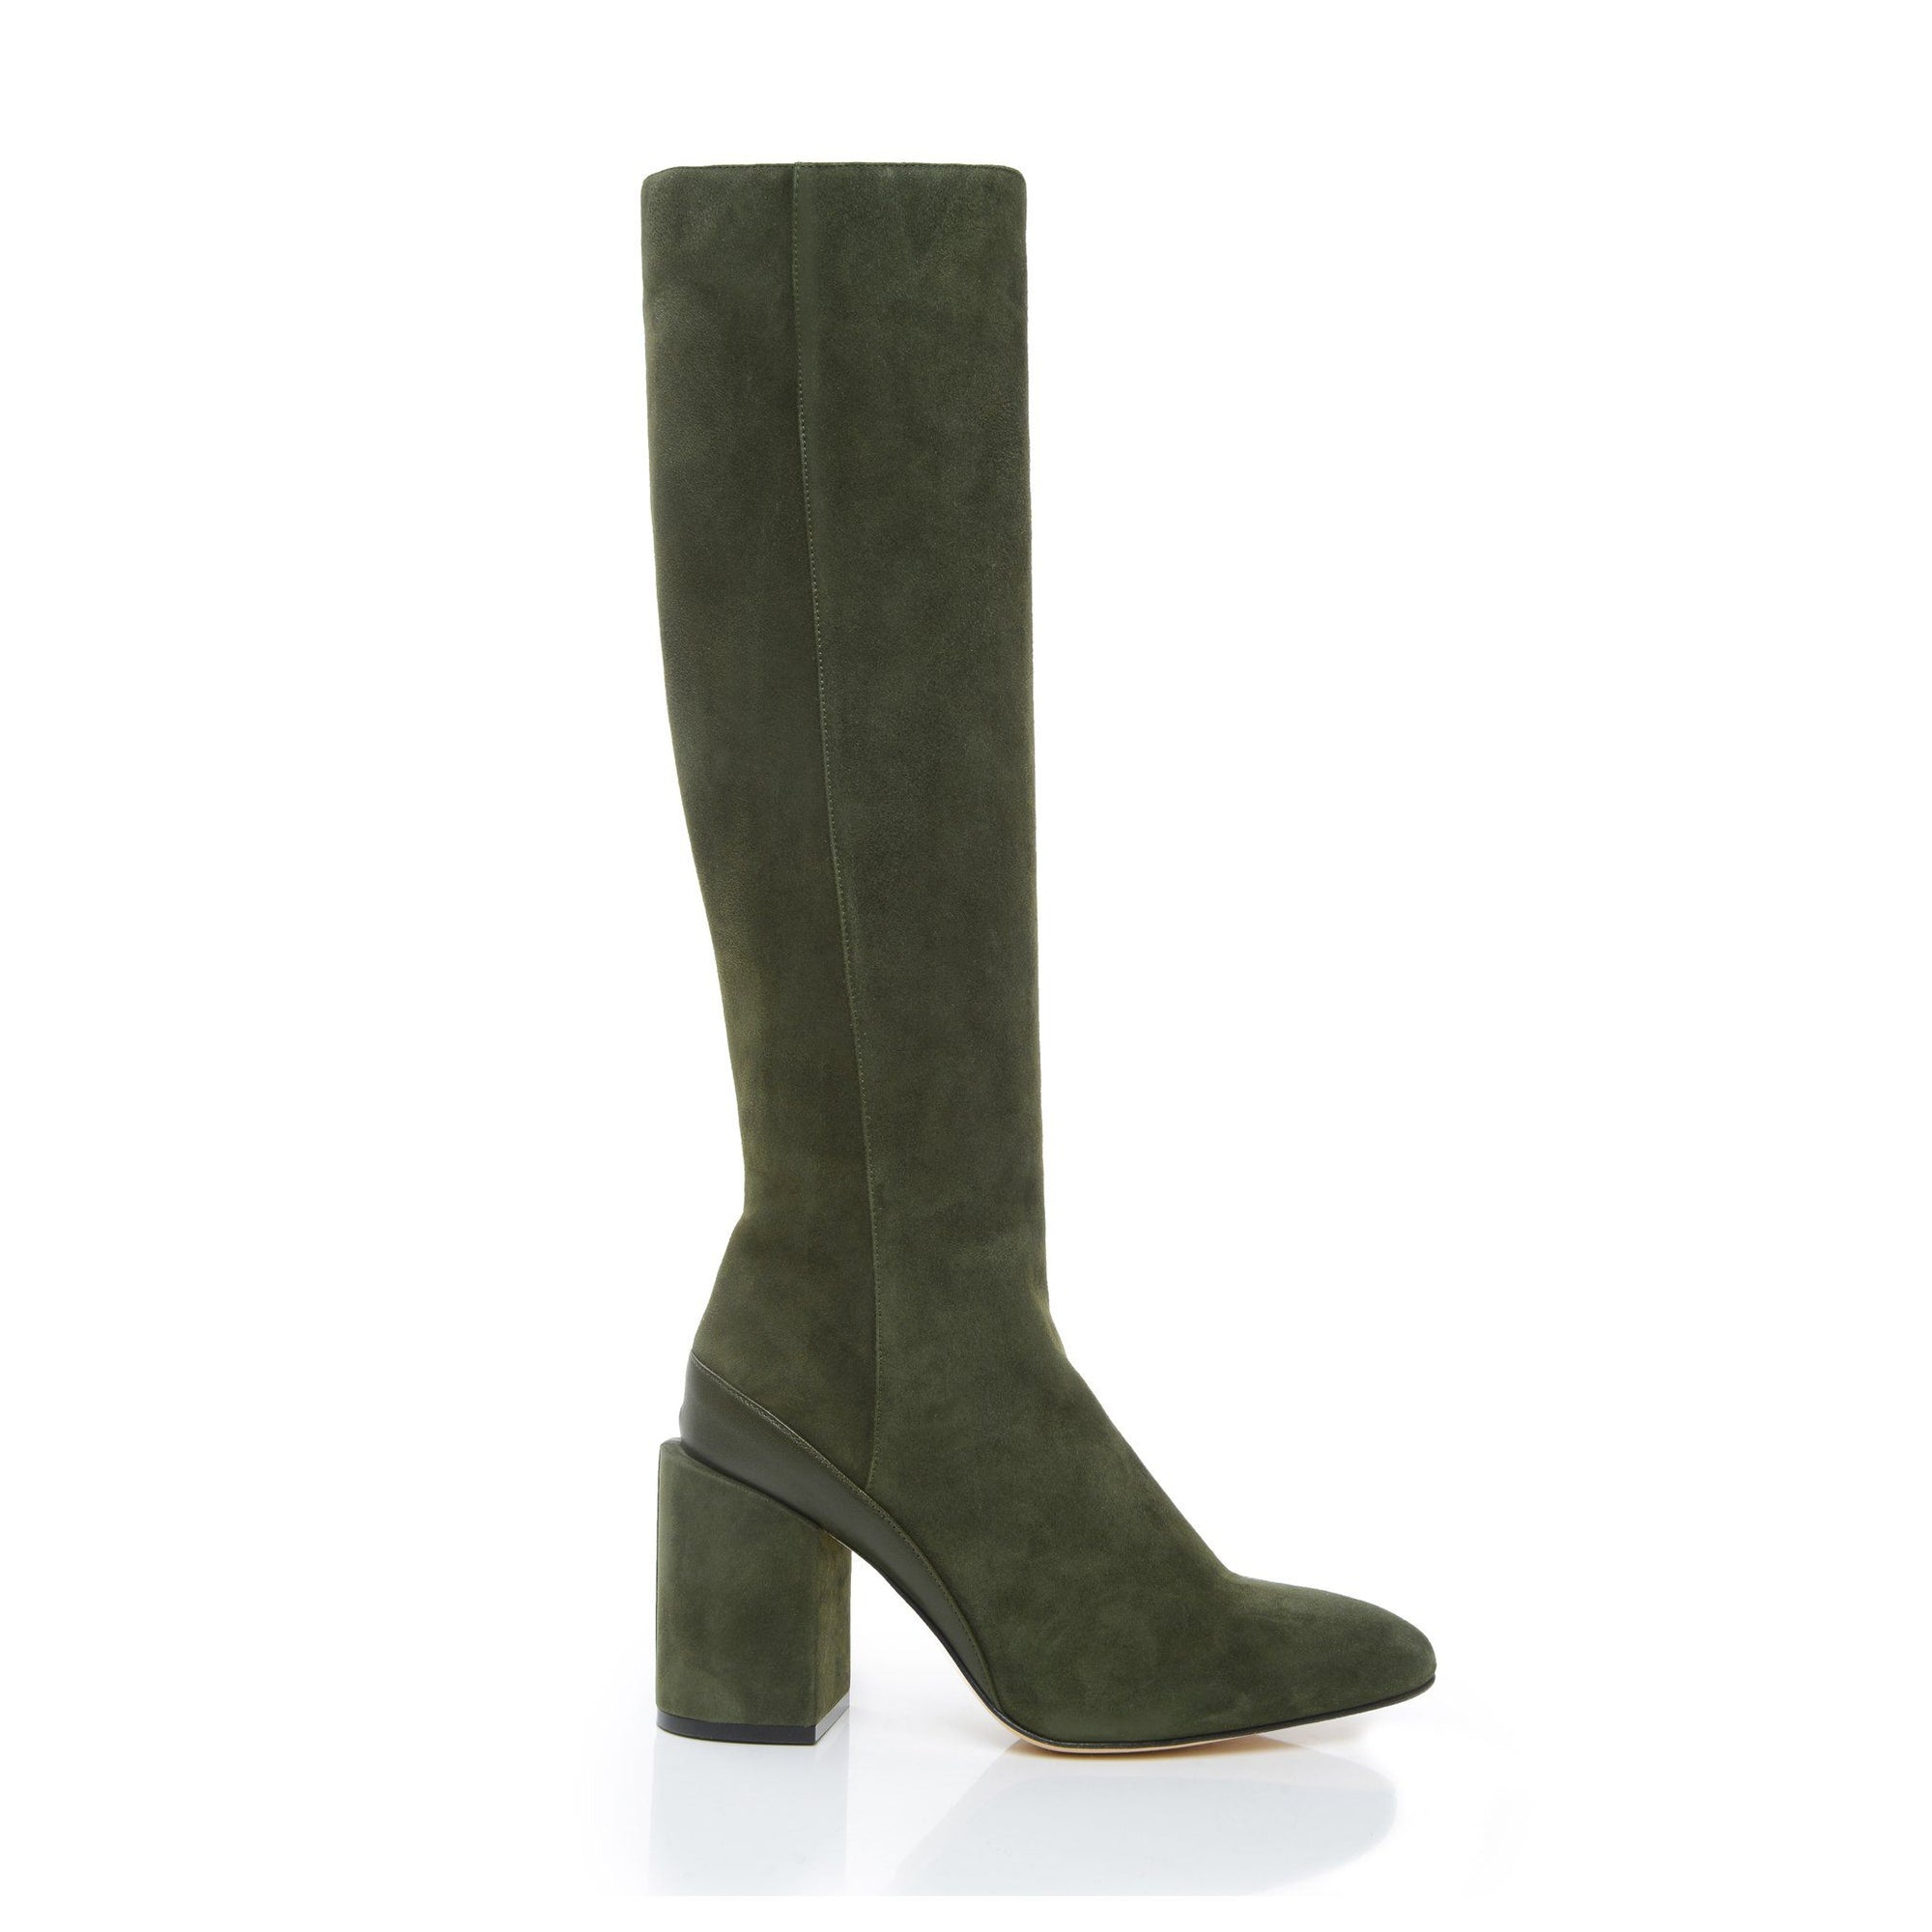 b407d77a0075 Womens Suede knee-high boots